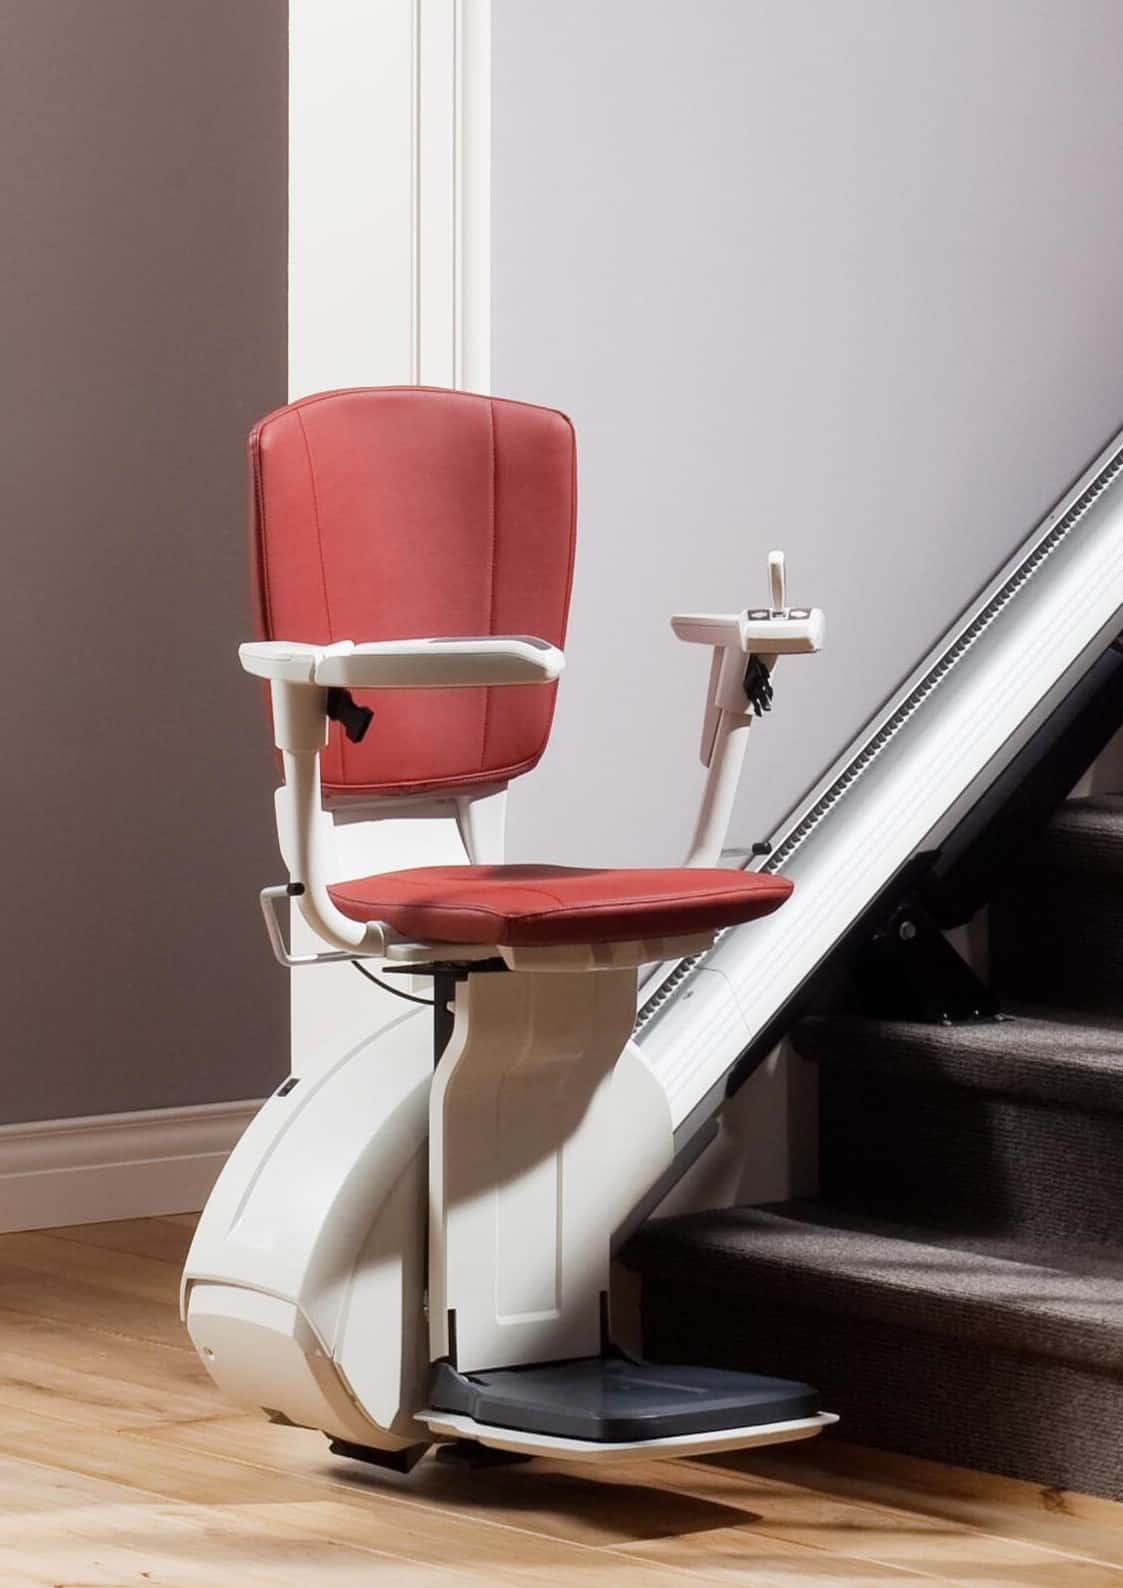 HomeGlide Extra Stairlift with Red upholstery